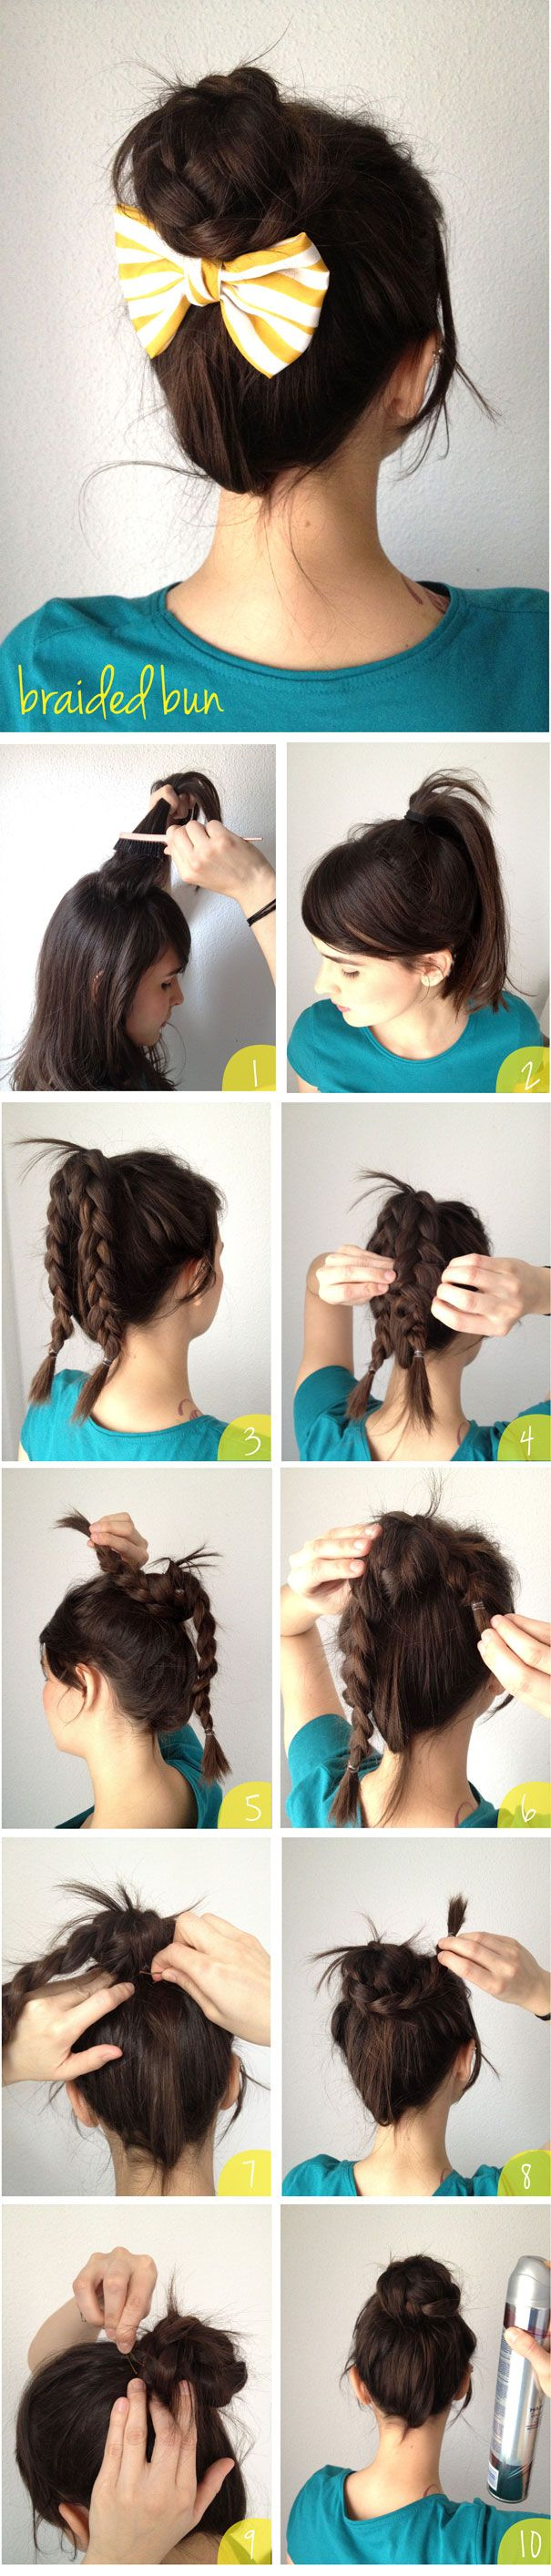 Braided Hair Bun: Hair Ideas, Hair Tutorials, Buns Hairstyles, Long Hair, Hairstyles Tutorials, Messy Buns, Hair Style, Hair Buns, Braids Buns